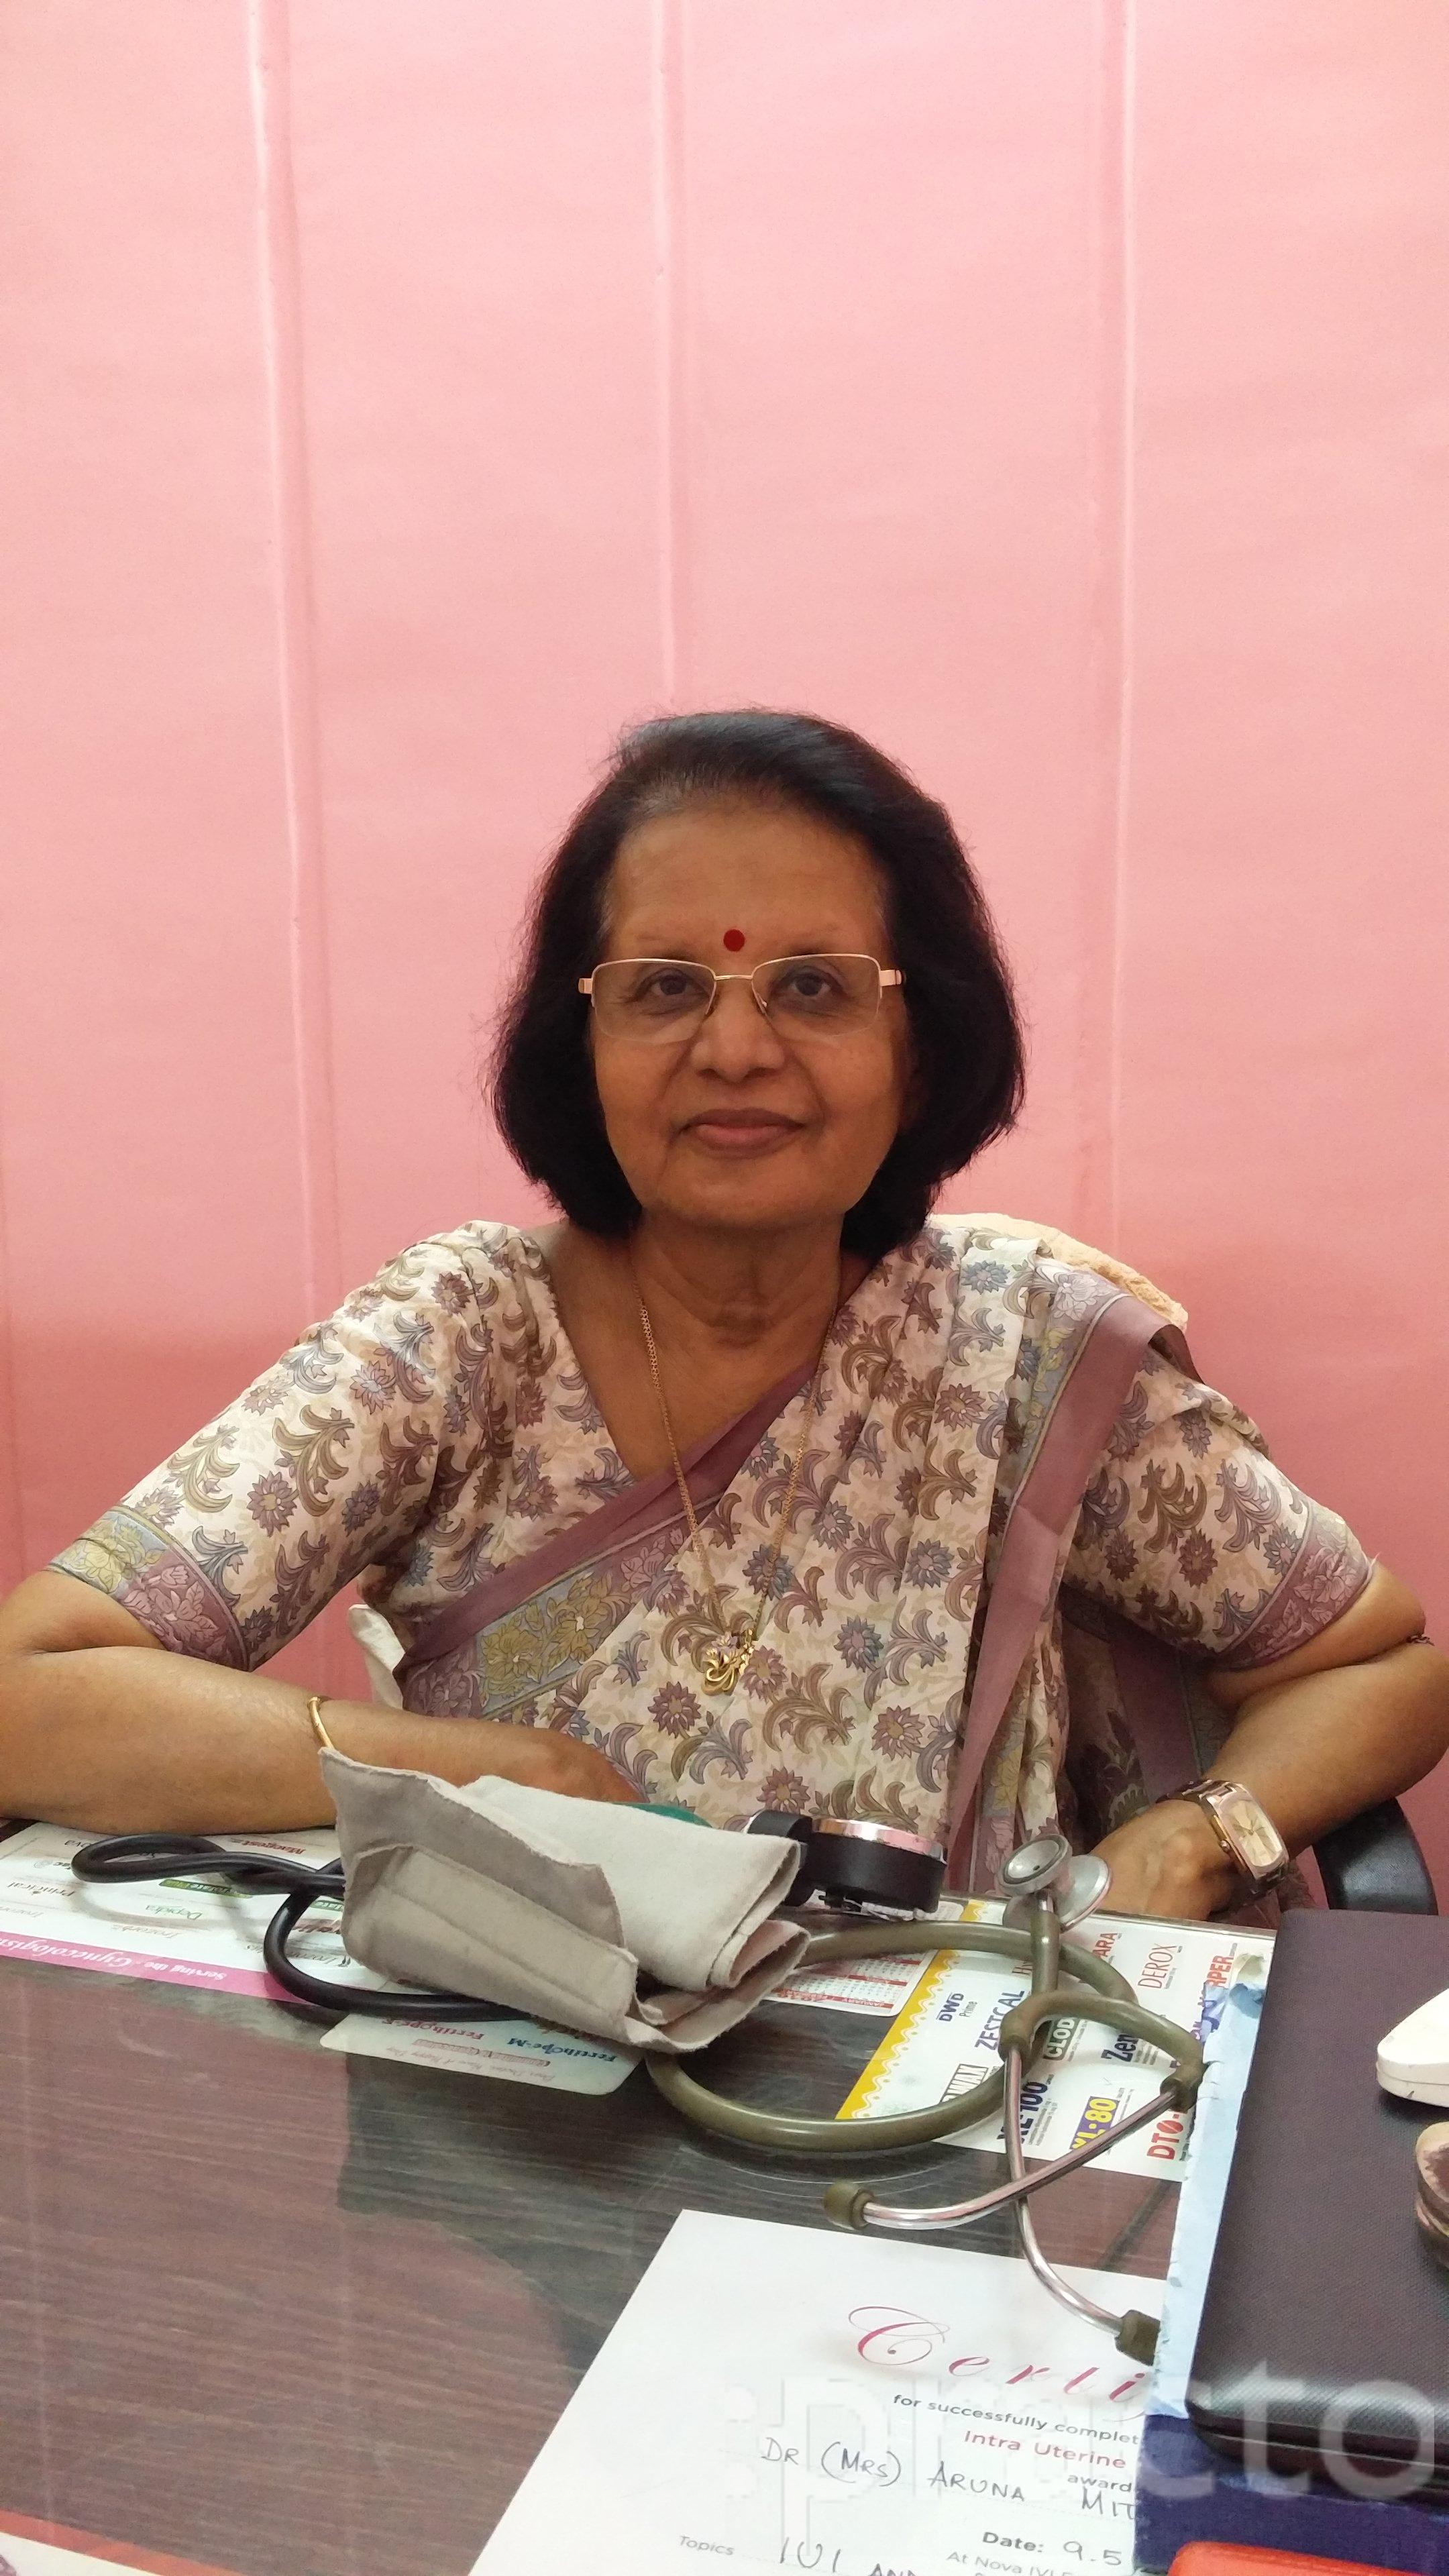 Dr. Aruna Mitra - Gynecologist/Obstetrician